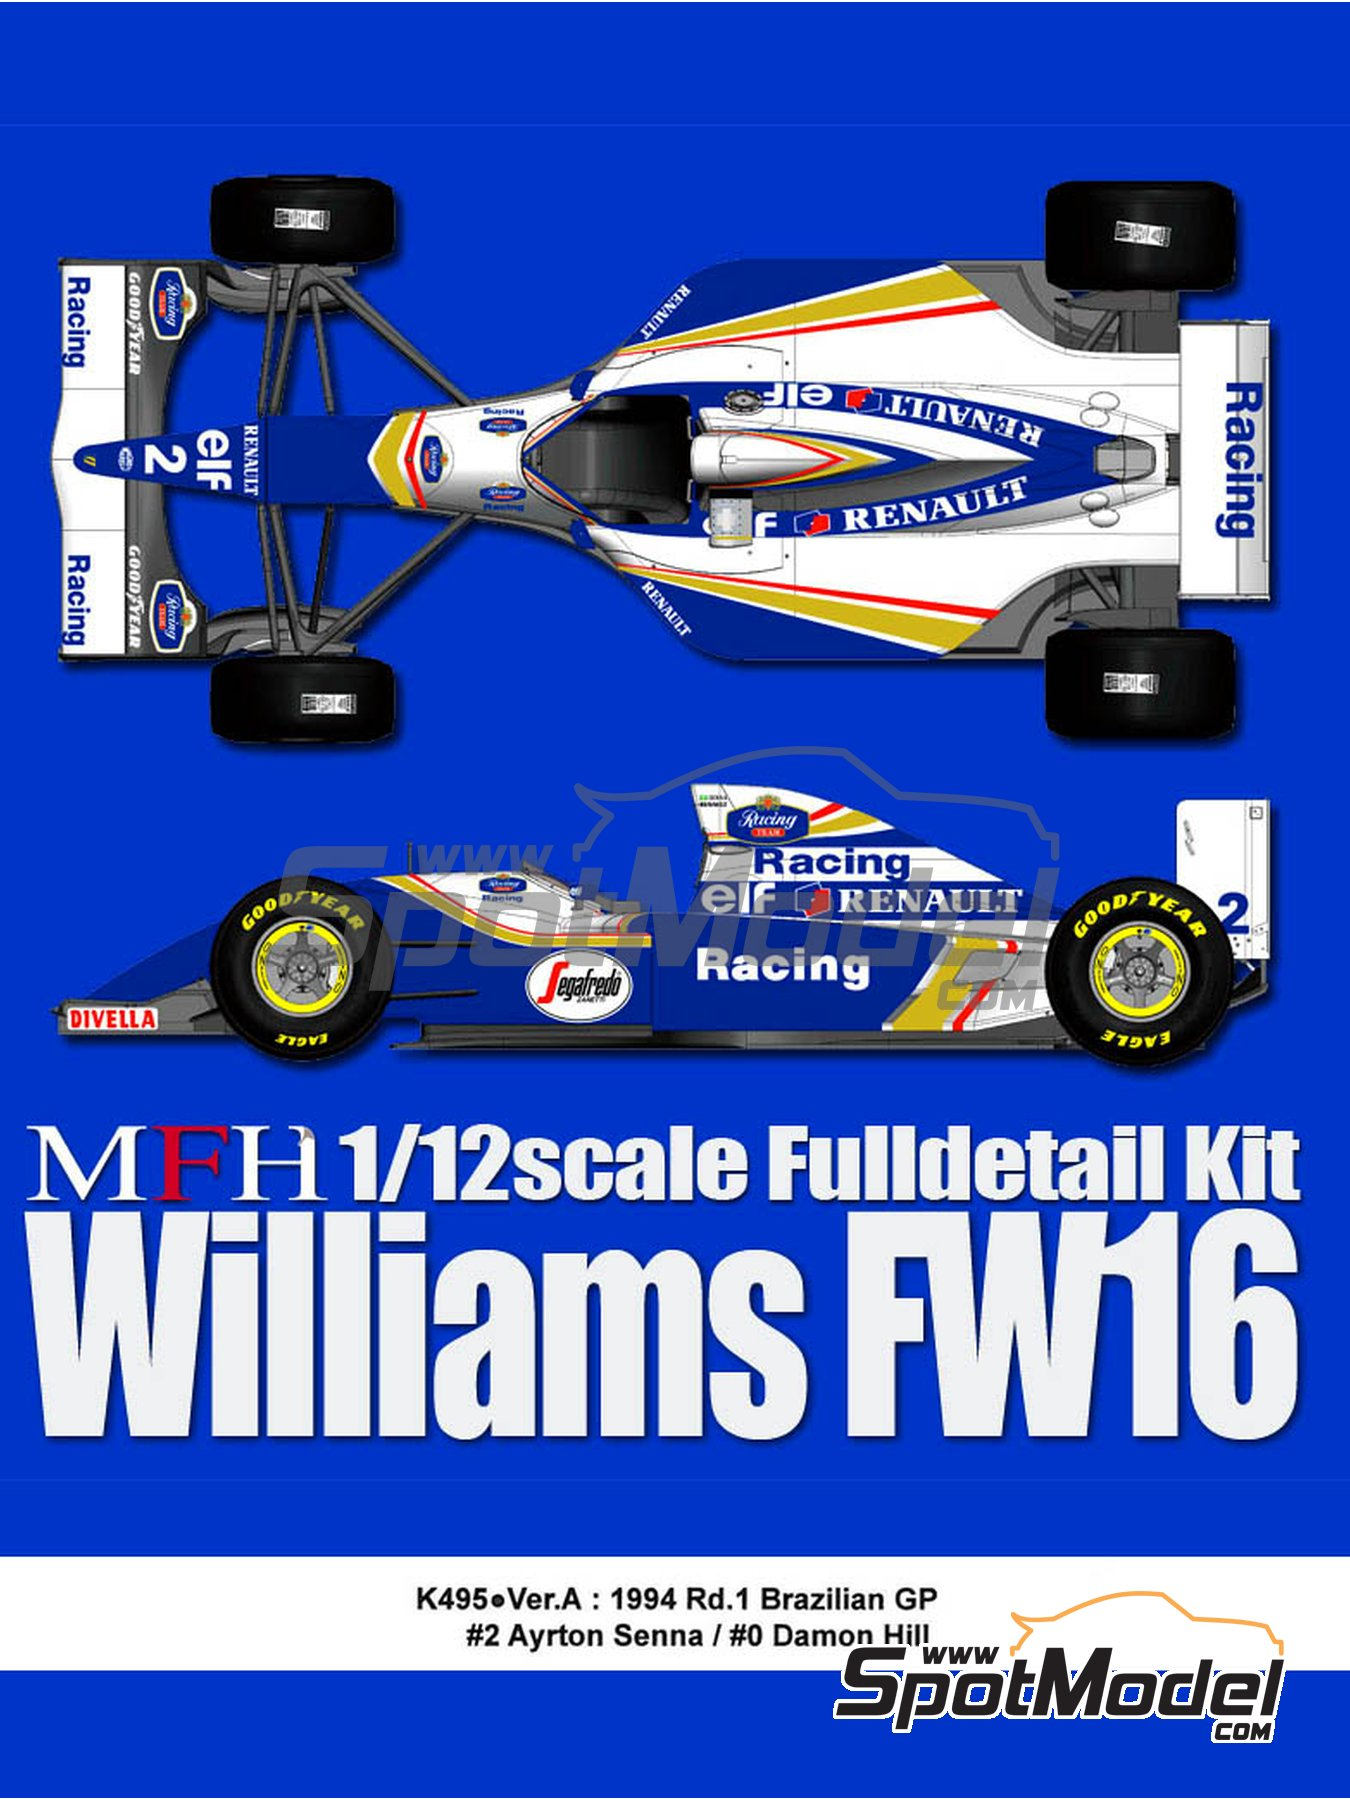 Williams Renault FW16 Rothmans - Pacific Formula 1 Grand Prix 1994 | Model car kit in 1/12 scale manufactured by Model Factory Hiro (ref.MFH-K496, also K-496) image